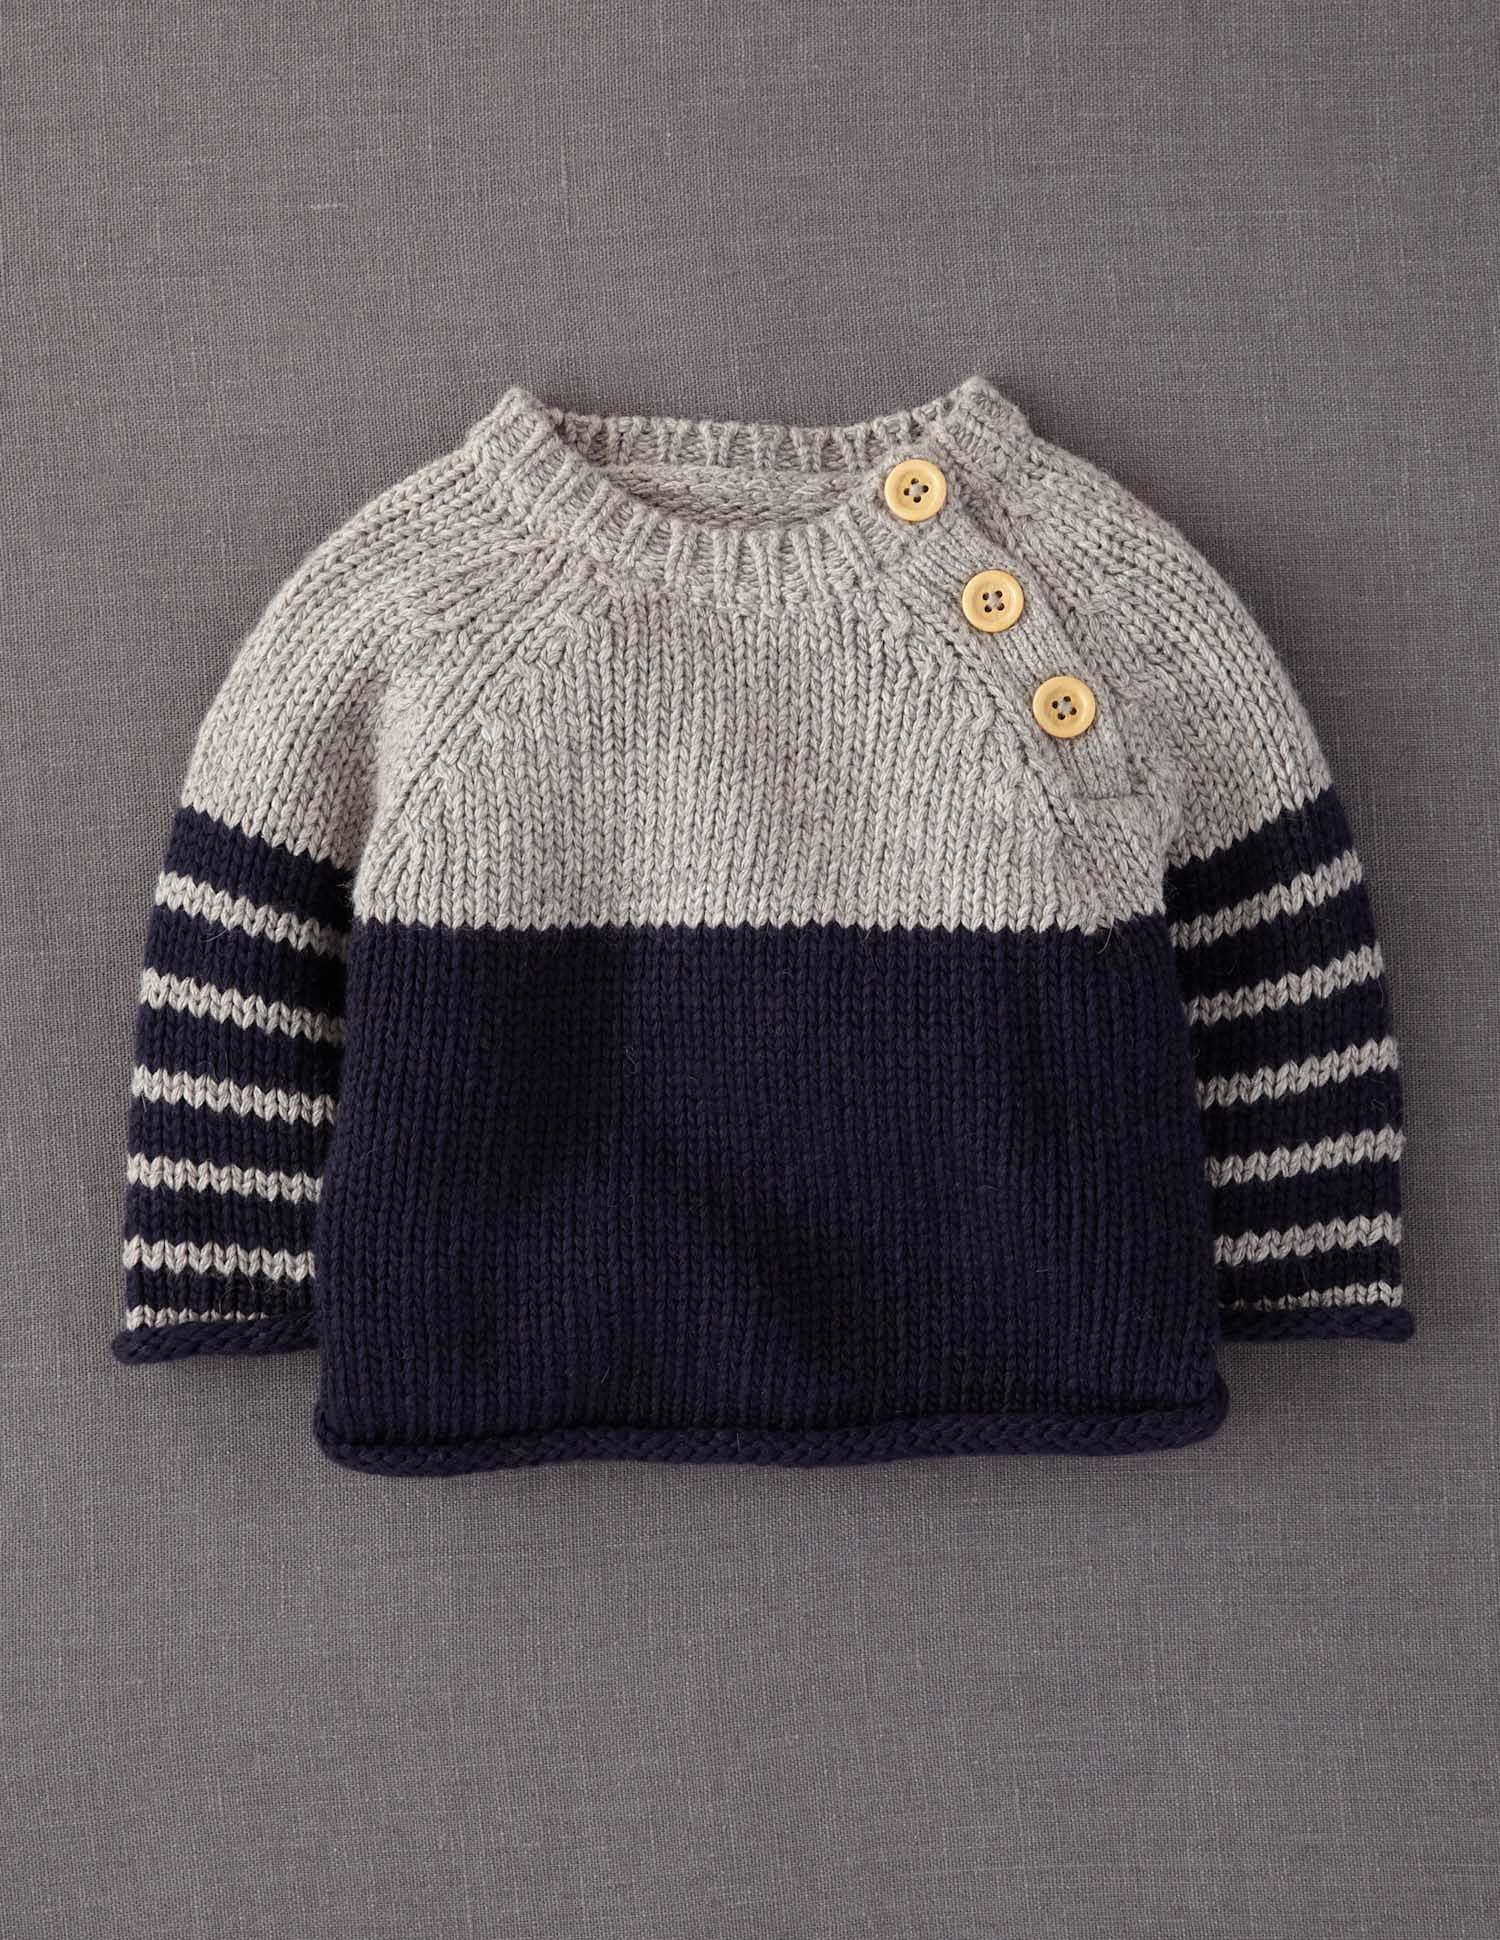 4ccc9c737 Winter knit pullover sweater   knits and kits - Juxtapost. Jersey de  invierno niño